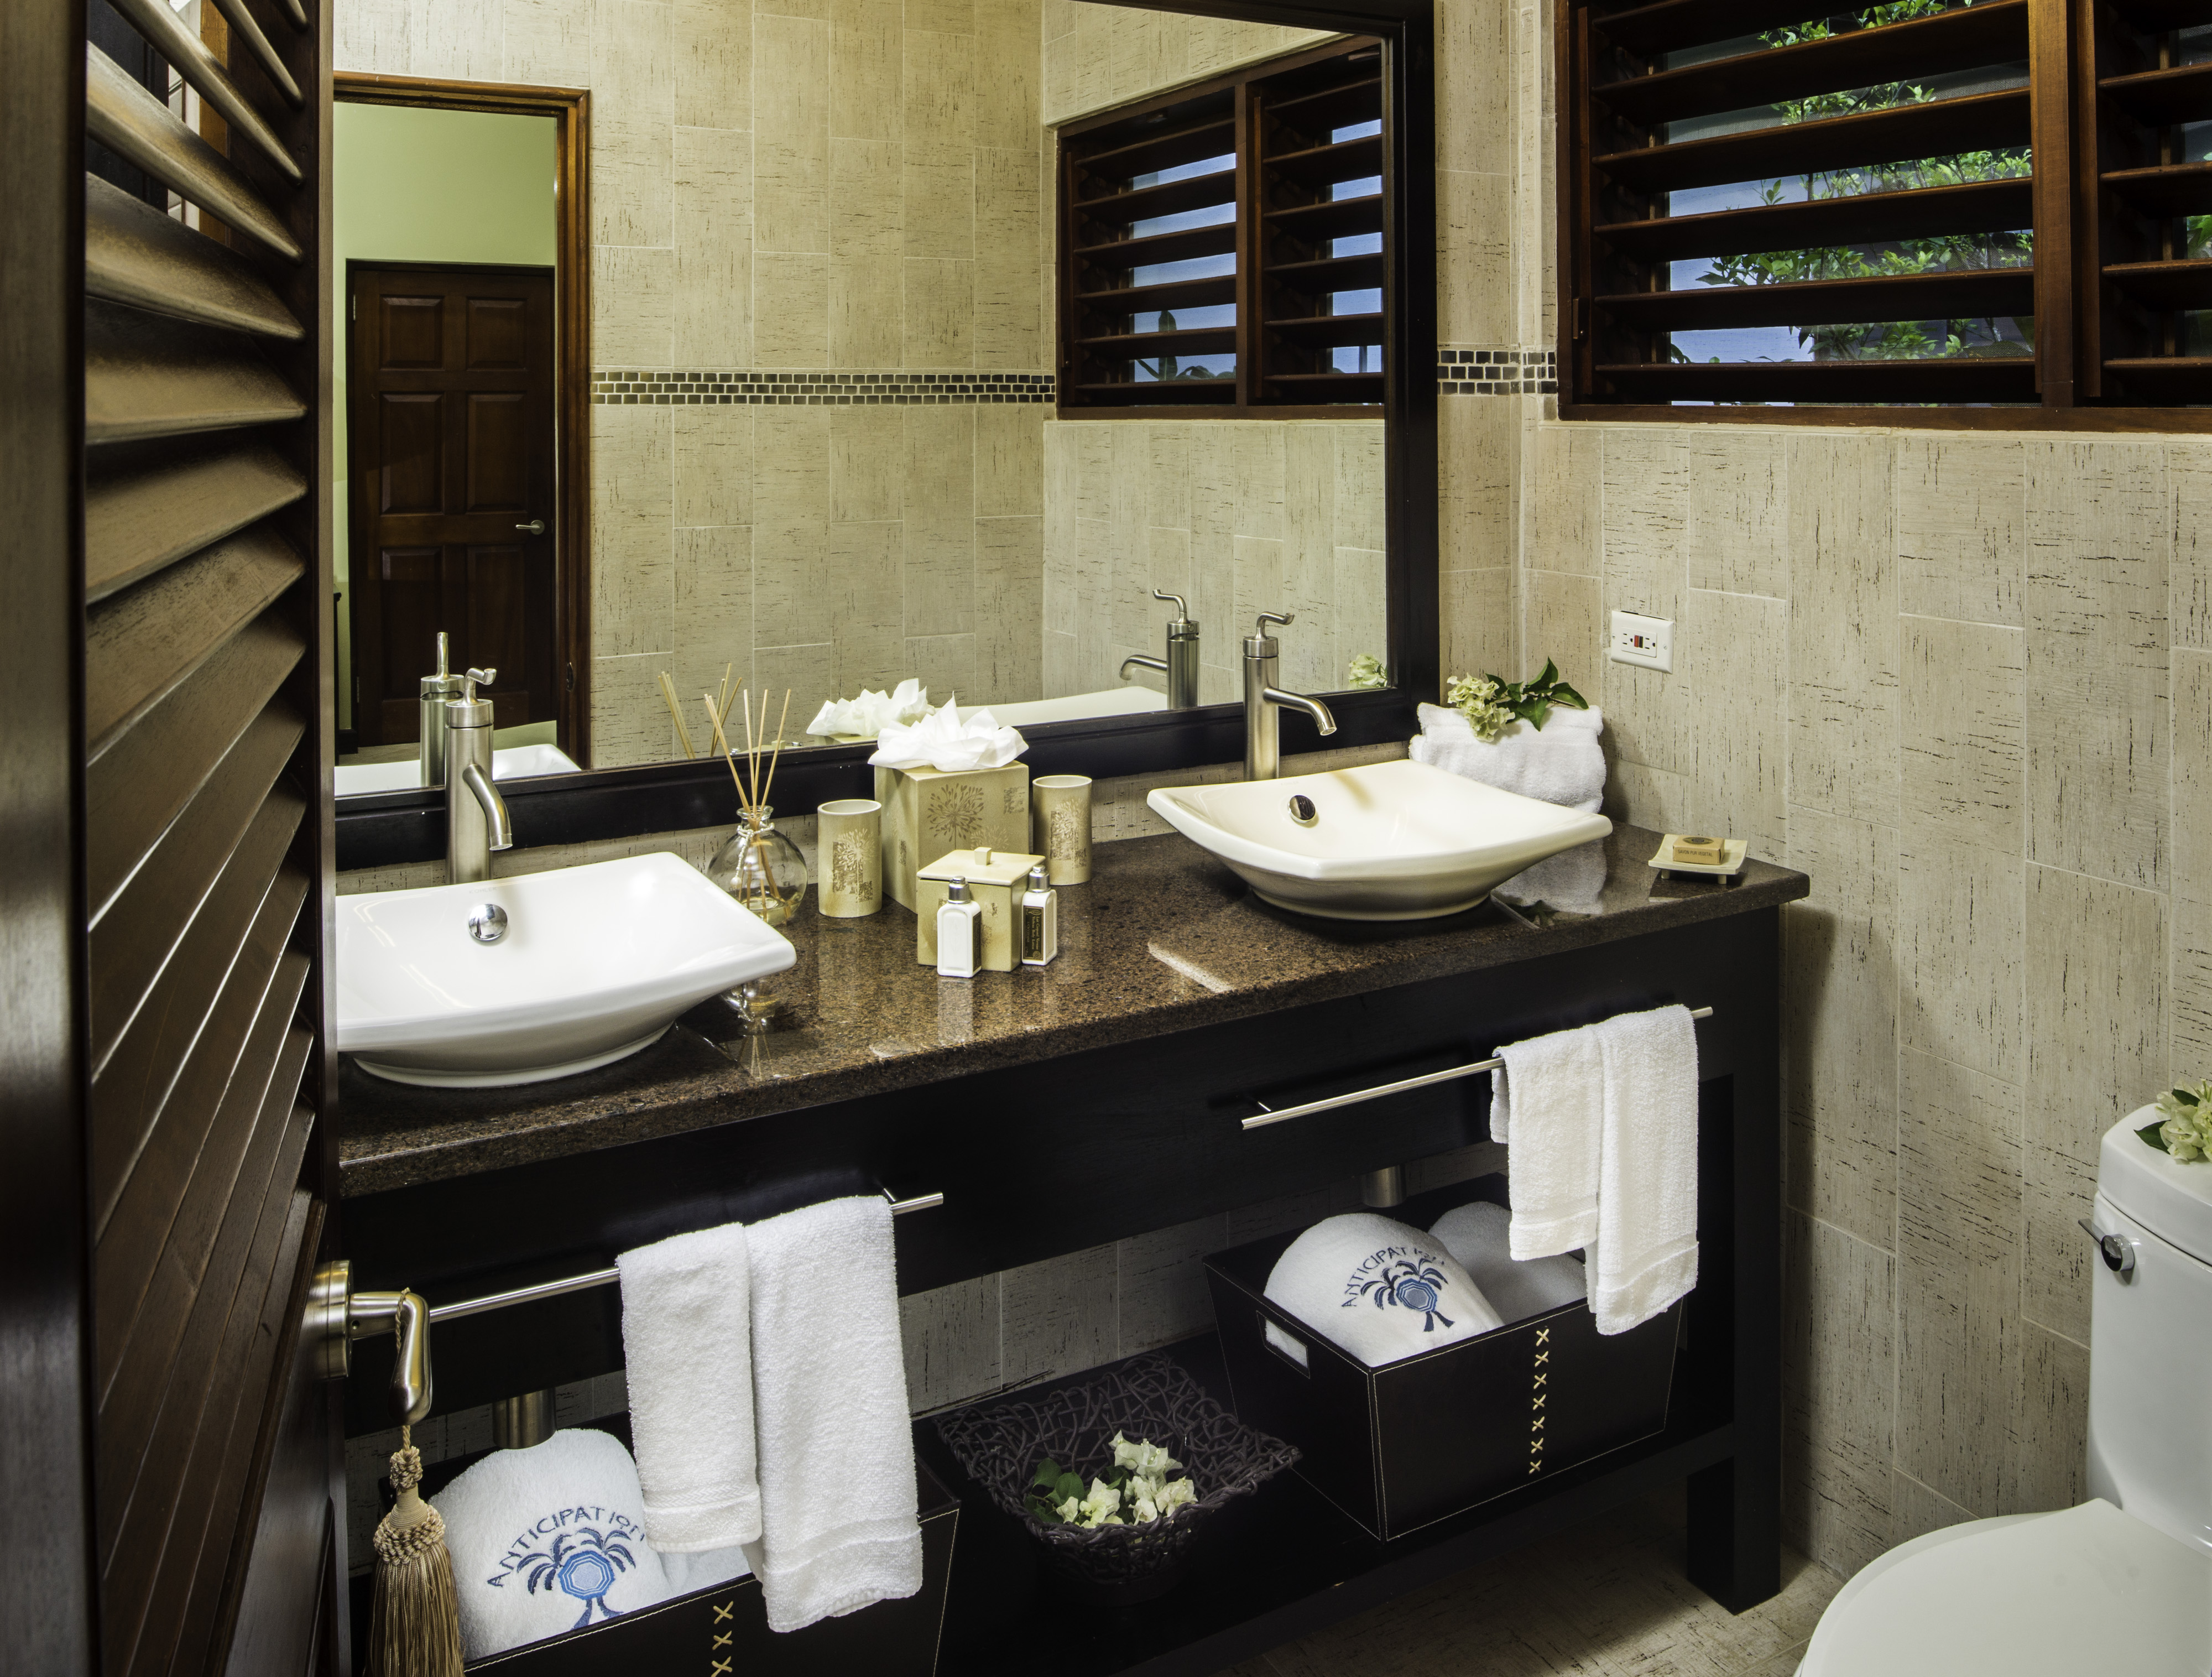 FAIRWAY SUITE BATH